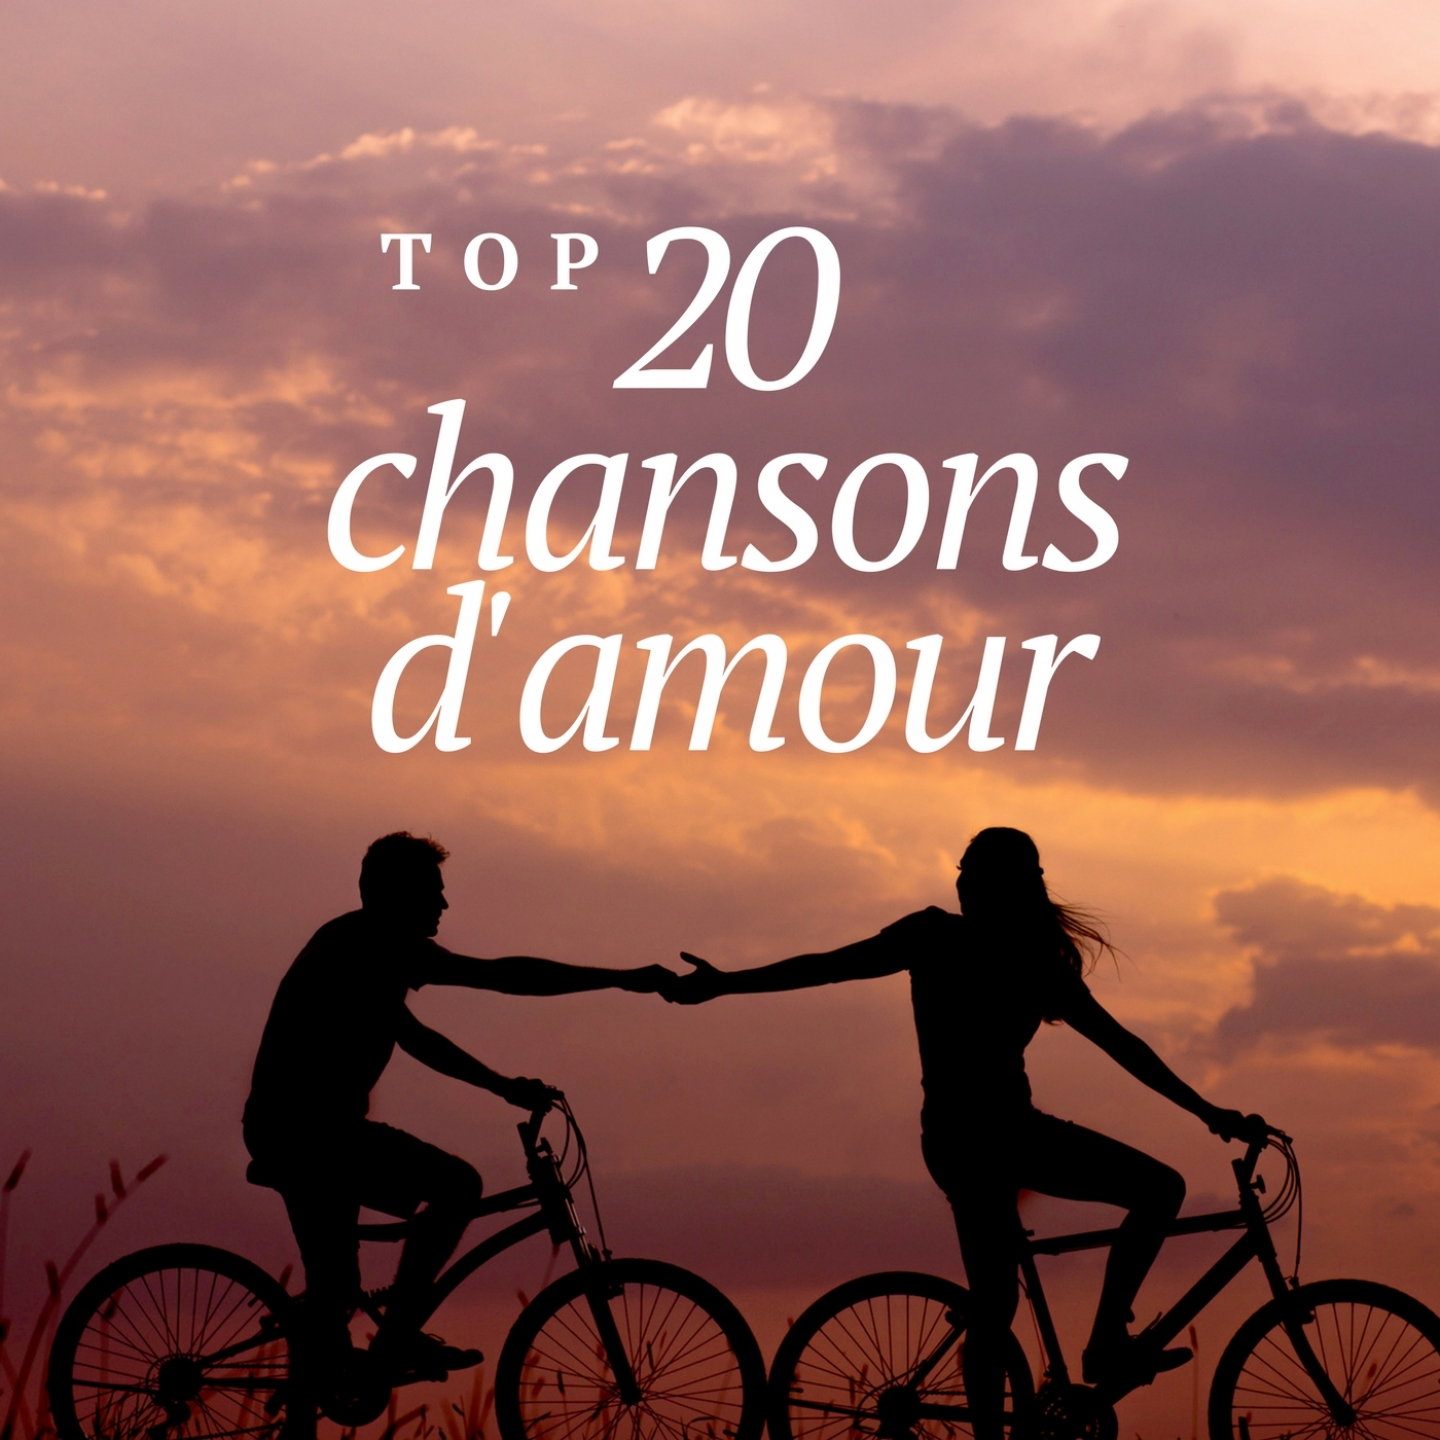 Top 20 chansons d'amour